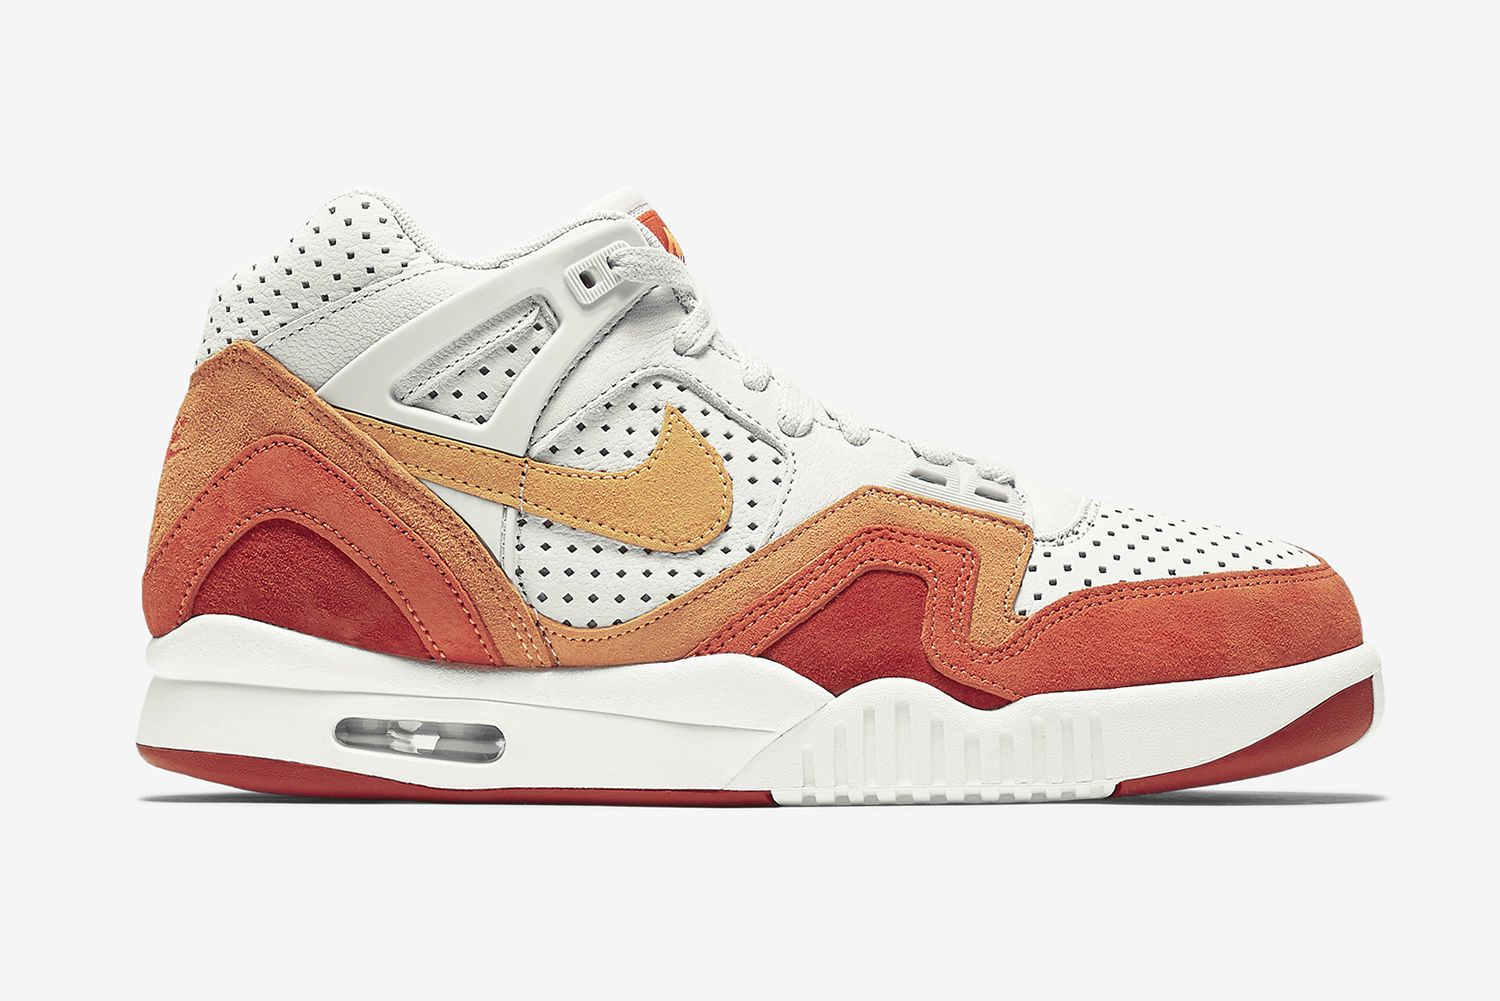 The Nike Air Tech Challenge II Gets Two Quickstrike